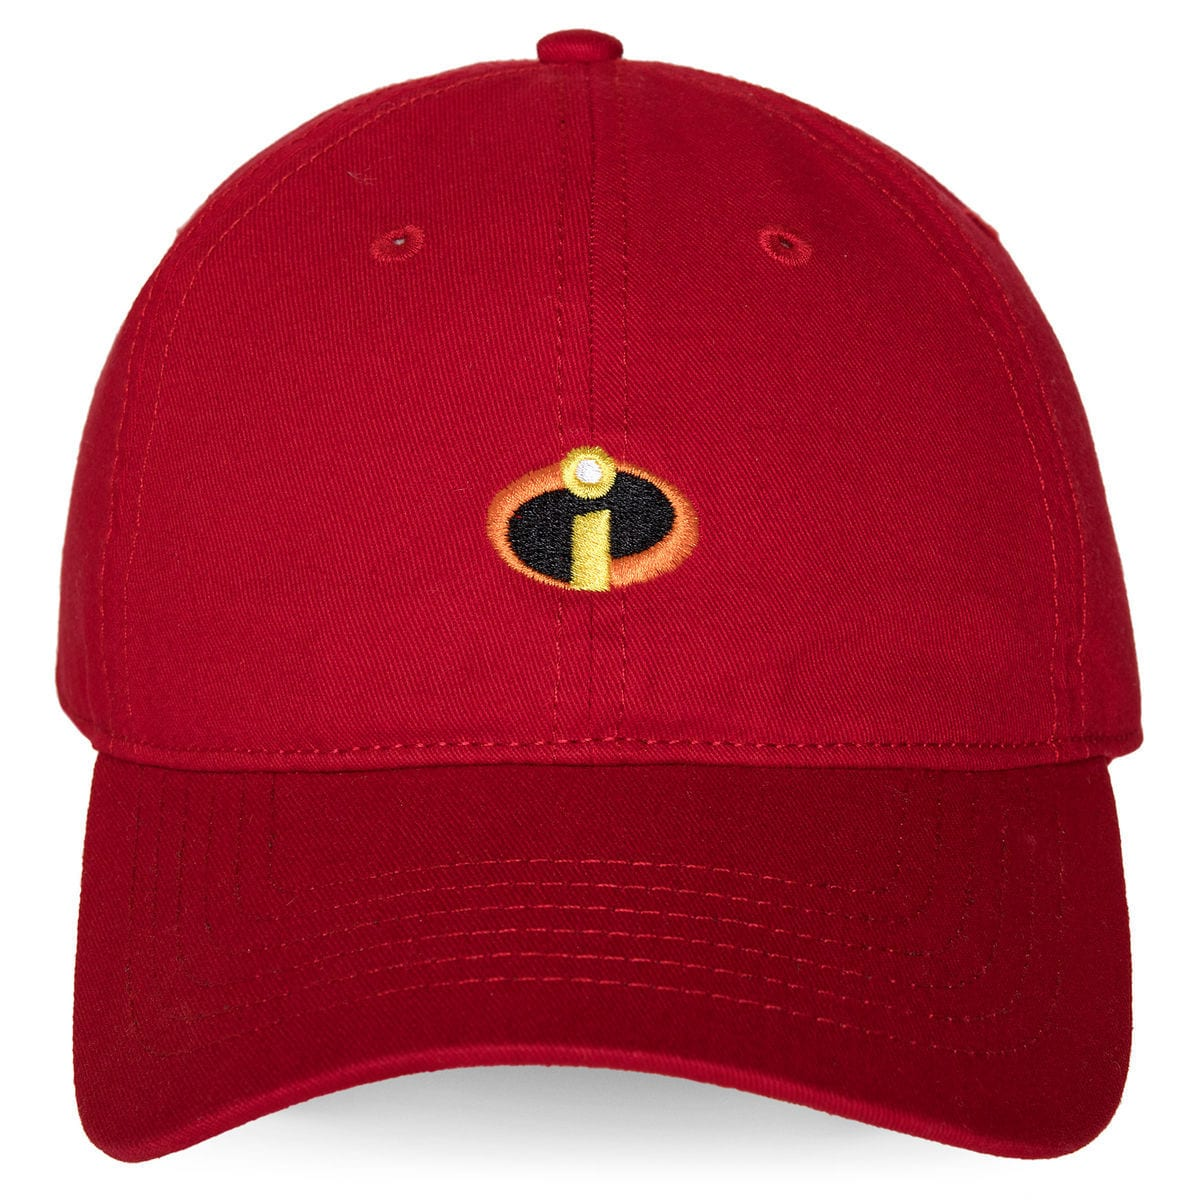 Product Image of Mr. Incredible Baseball Cap for Men   1 f27cbec24a8